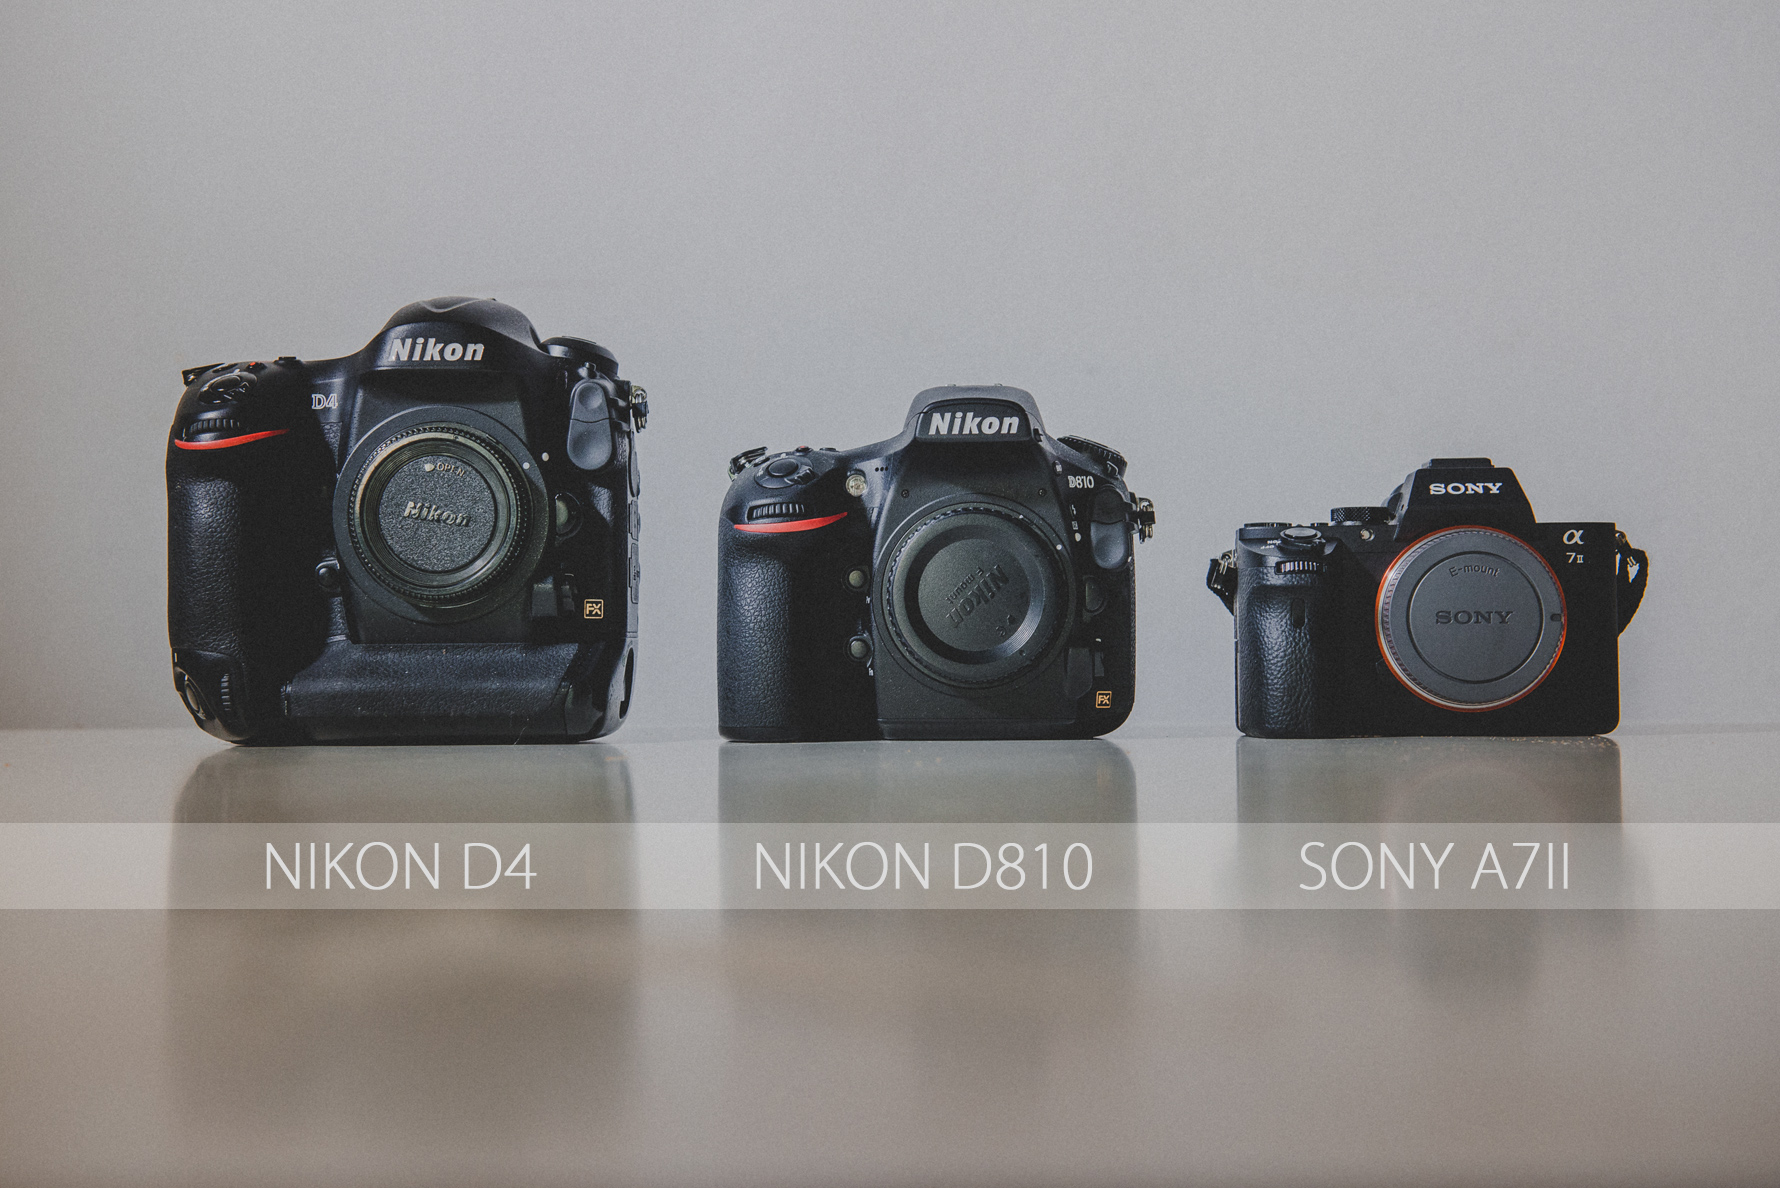 The size of mirroless sony a7II compared with the Nikon D4 and Nikon D810